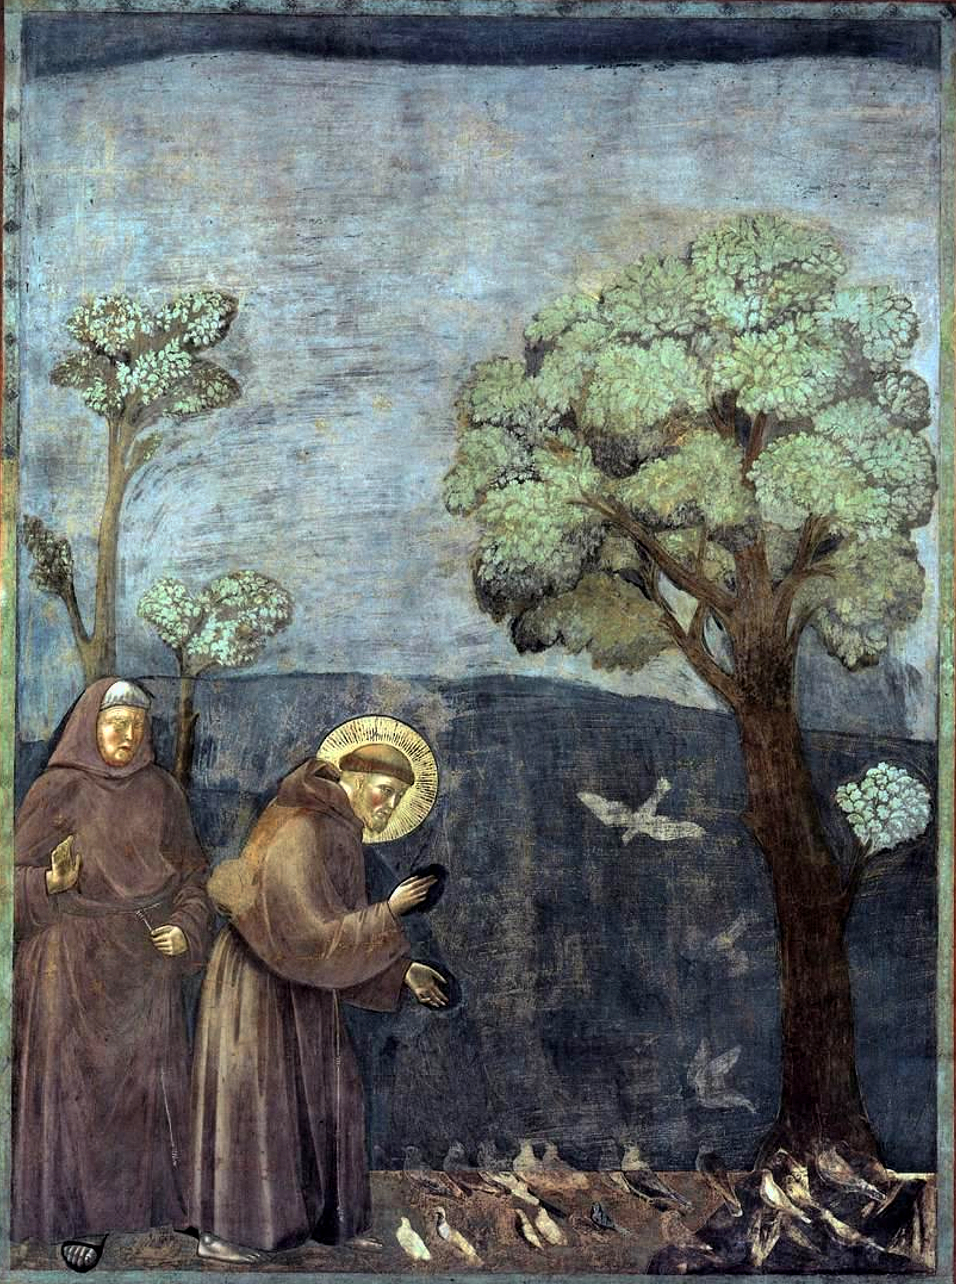 http://upload.wikimedia.org/wikipedia/commons/8/84/Giotto_-_Legend_of_St_Francis_-_-15-_-_Sermon_to_the_Birds.jpg